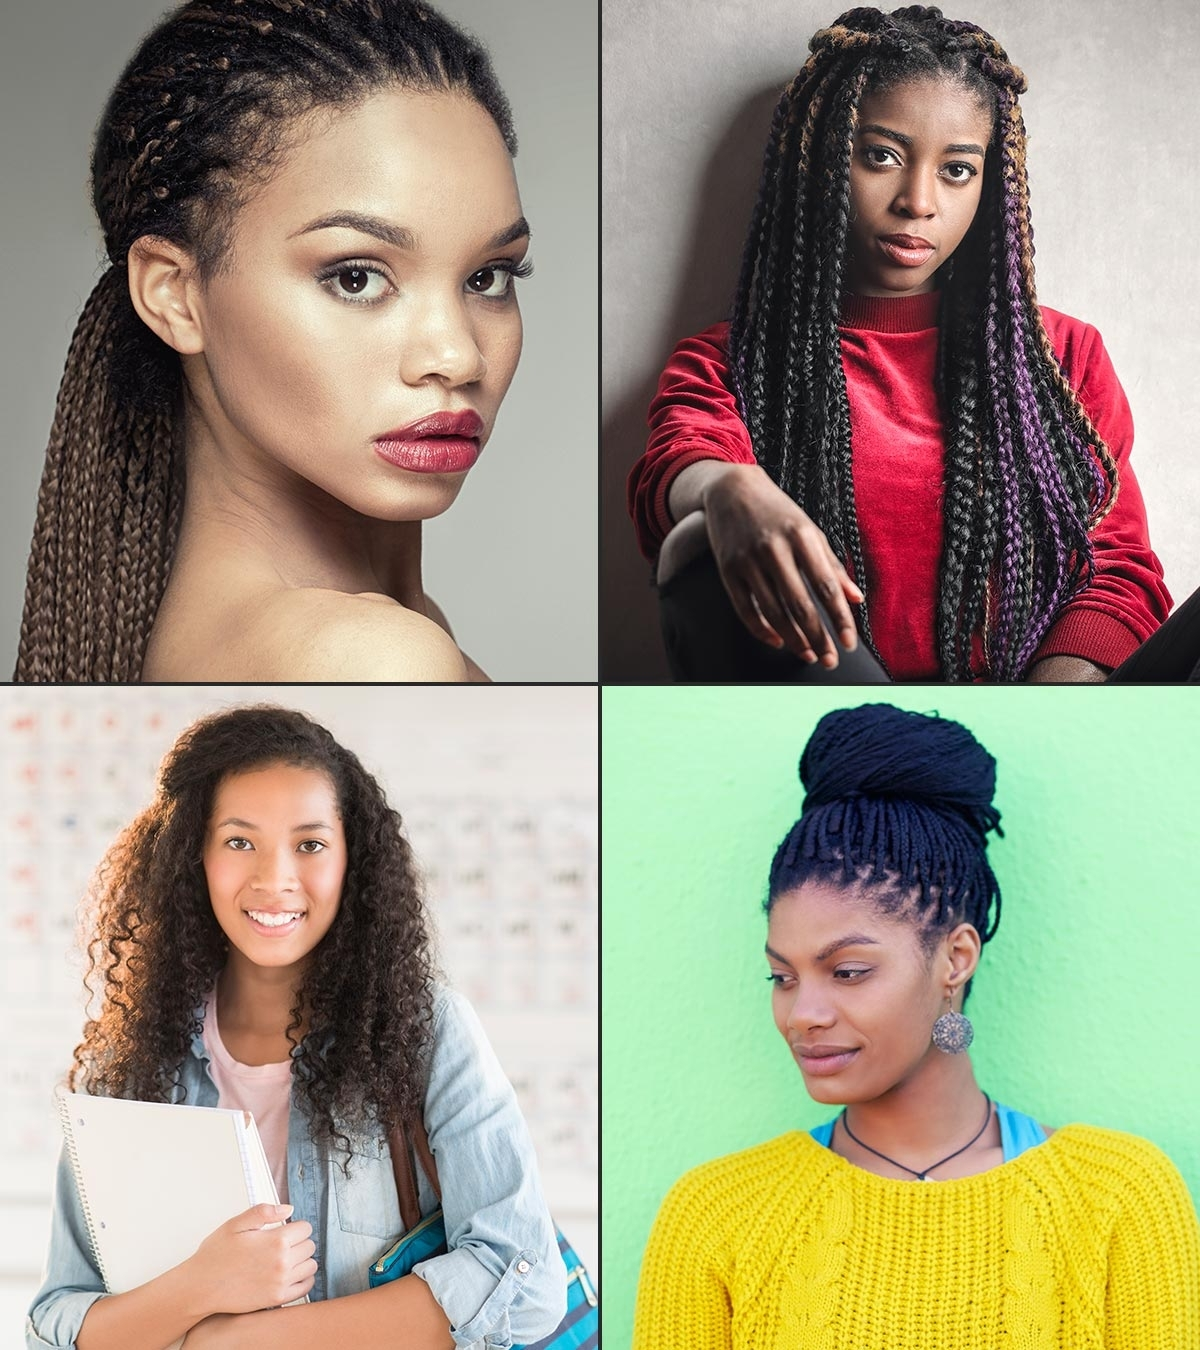 15 Cute Hairstyles For Black Teenage Girls 40+ Amazing Hairstyles For Black Teenage Girl With Medium Hair